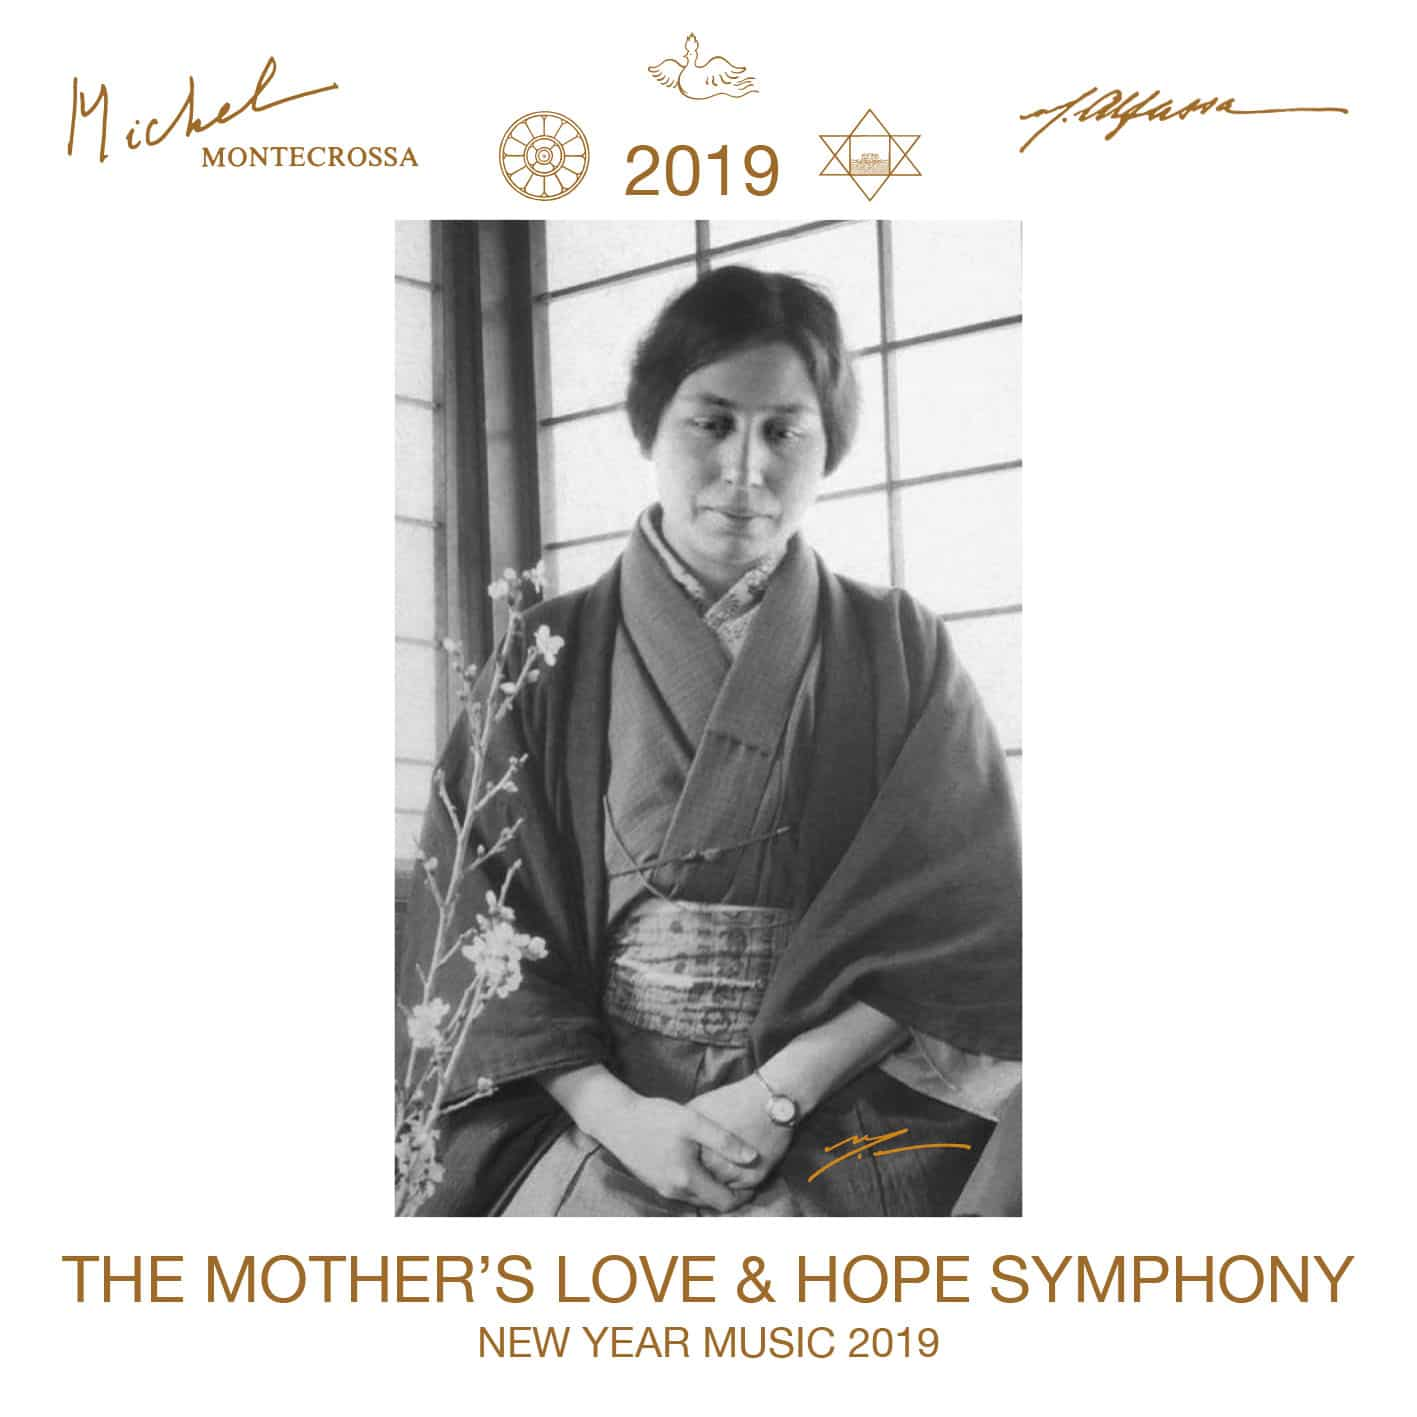 The Mother's Love & Hope Symphony – Michel Montecrossa's New Year Music 2019